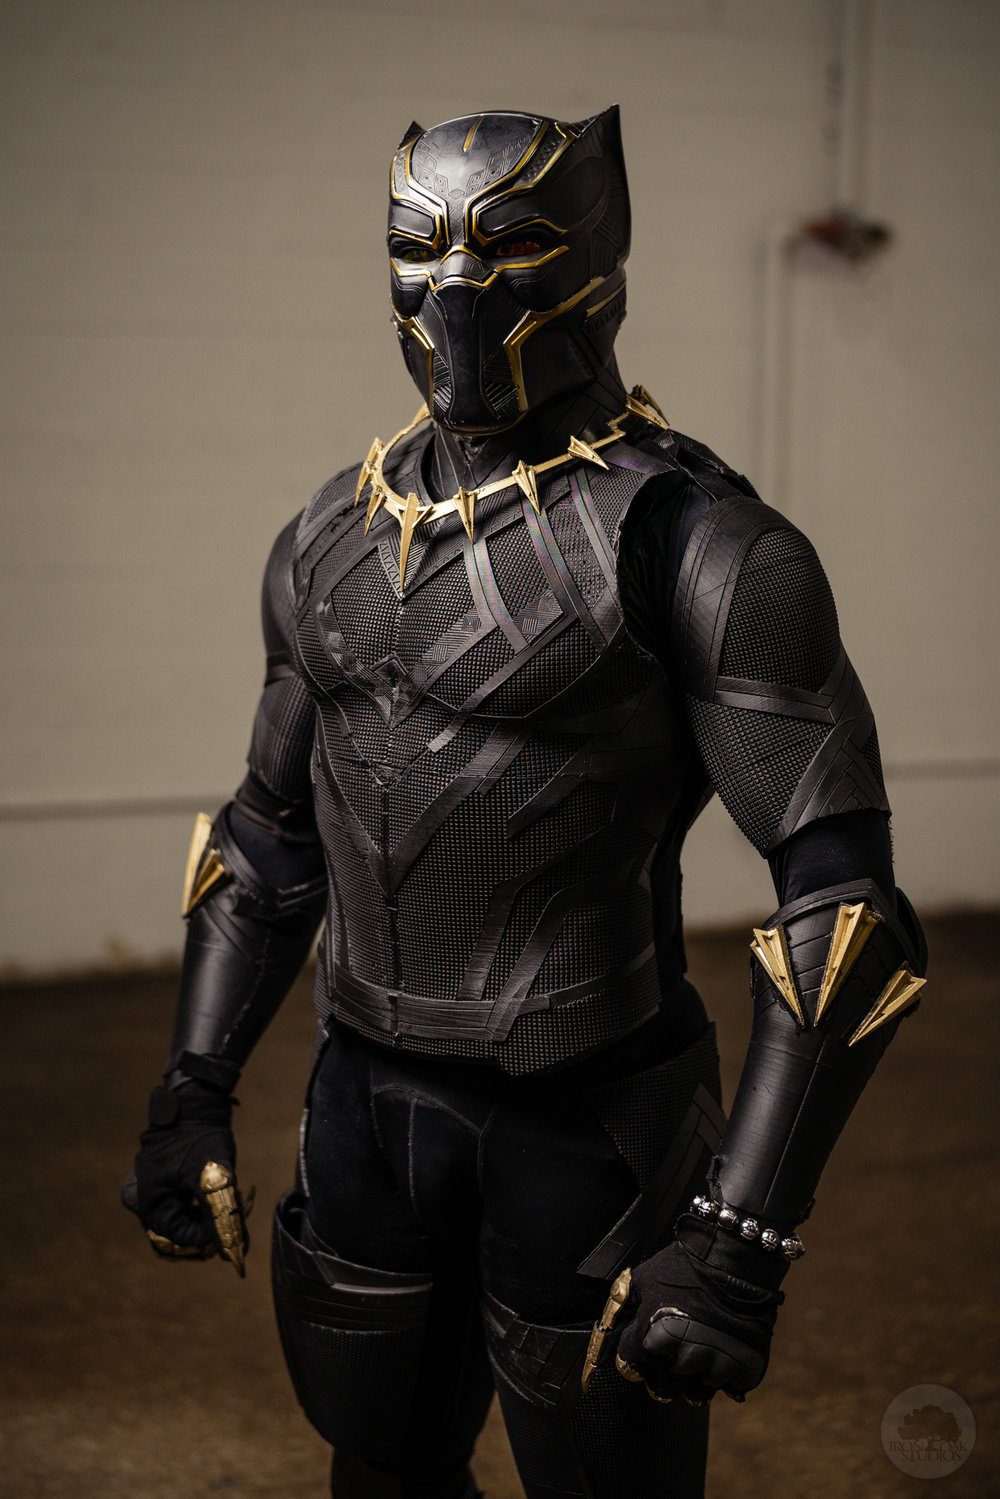 IronOakStudios_Phila_ComicCon_BlackPanther_Cosplay.jpg